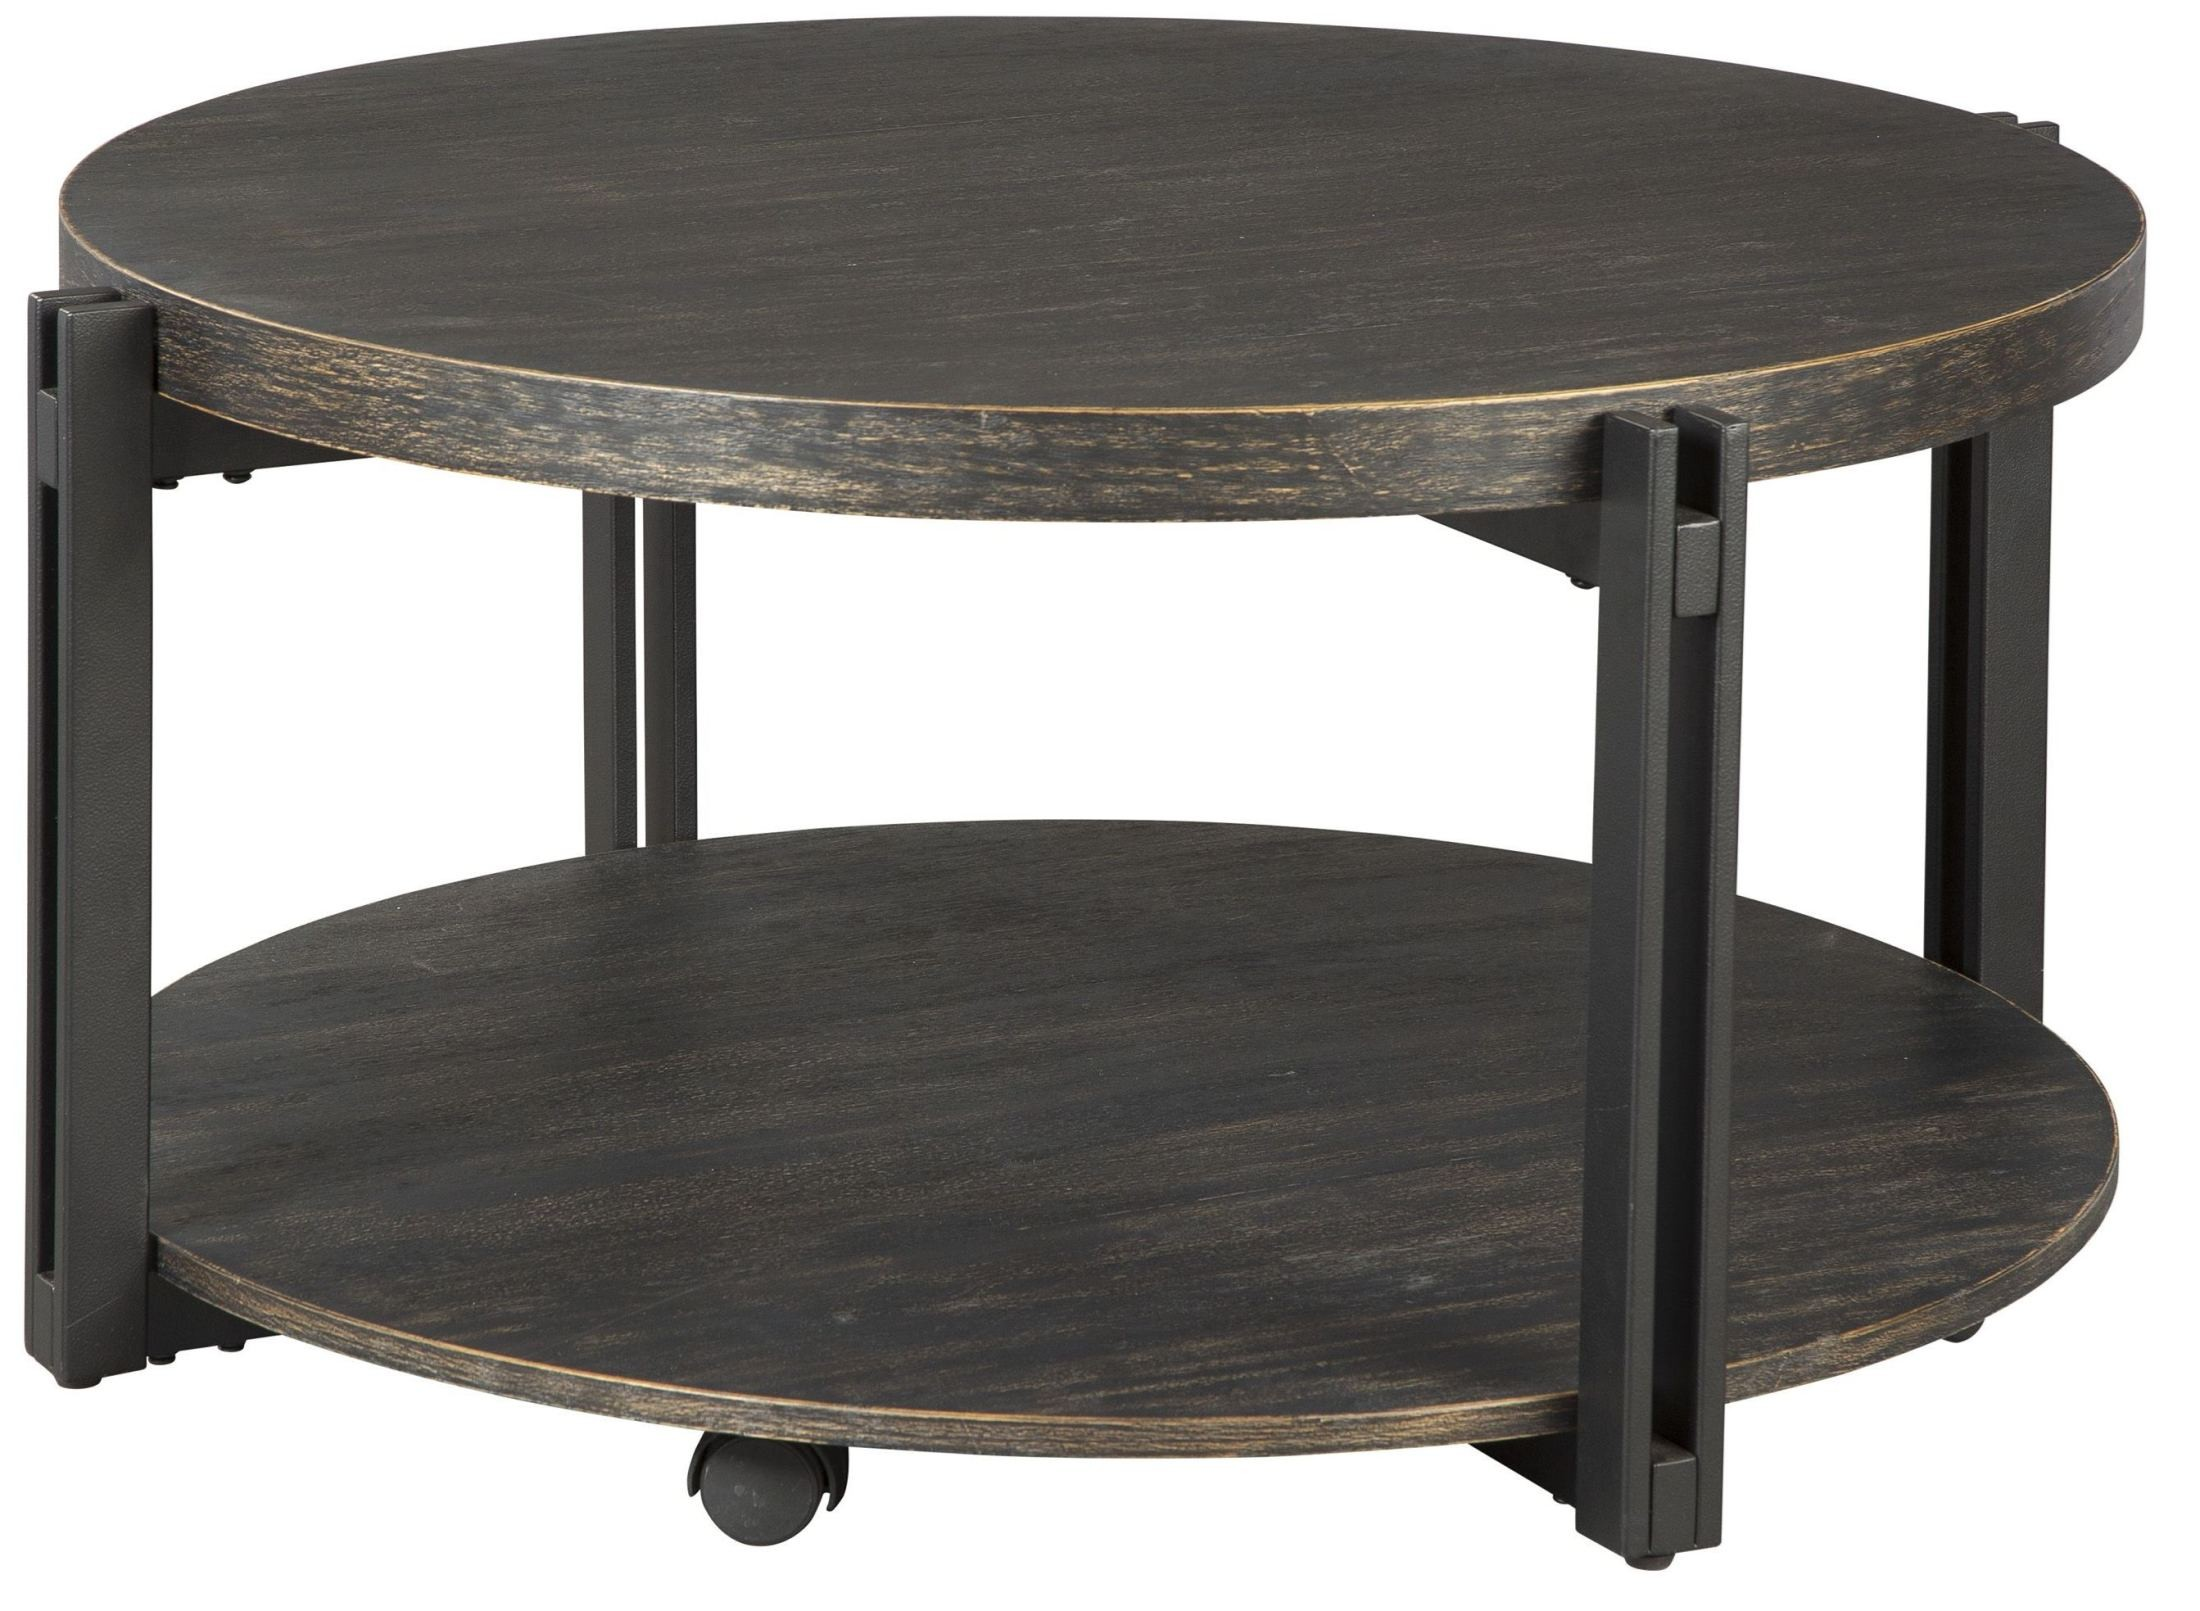 Winnieconi black round cocktail table t857 8 ashley Round cocktail table